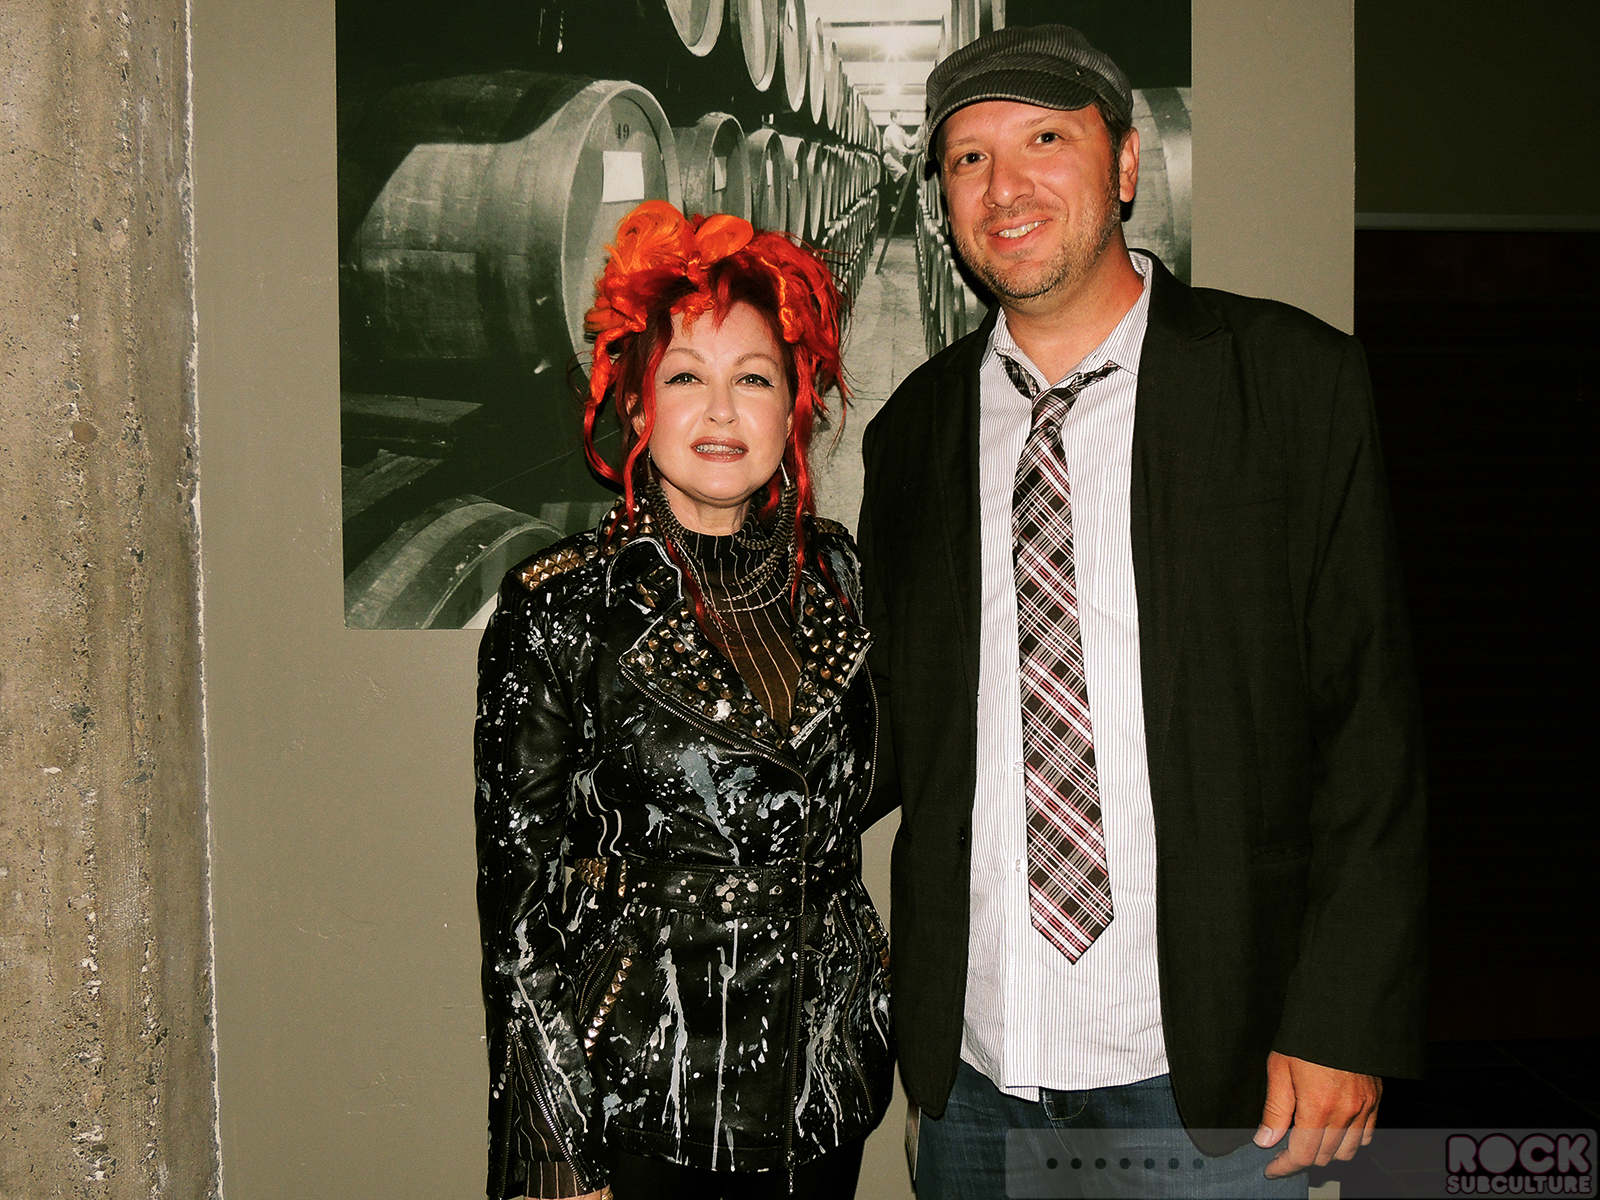 Cyndi Lauper Shes So Unusual 30th Anniversary Tour At Mountain